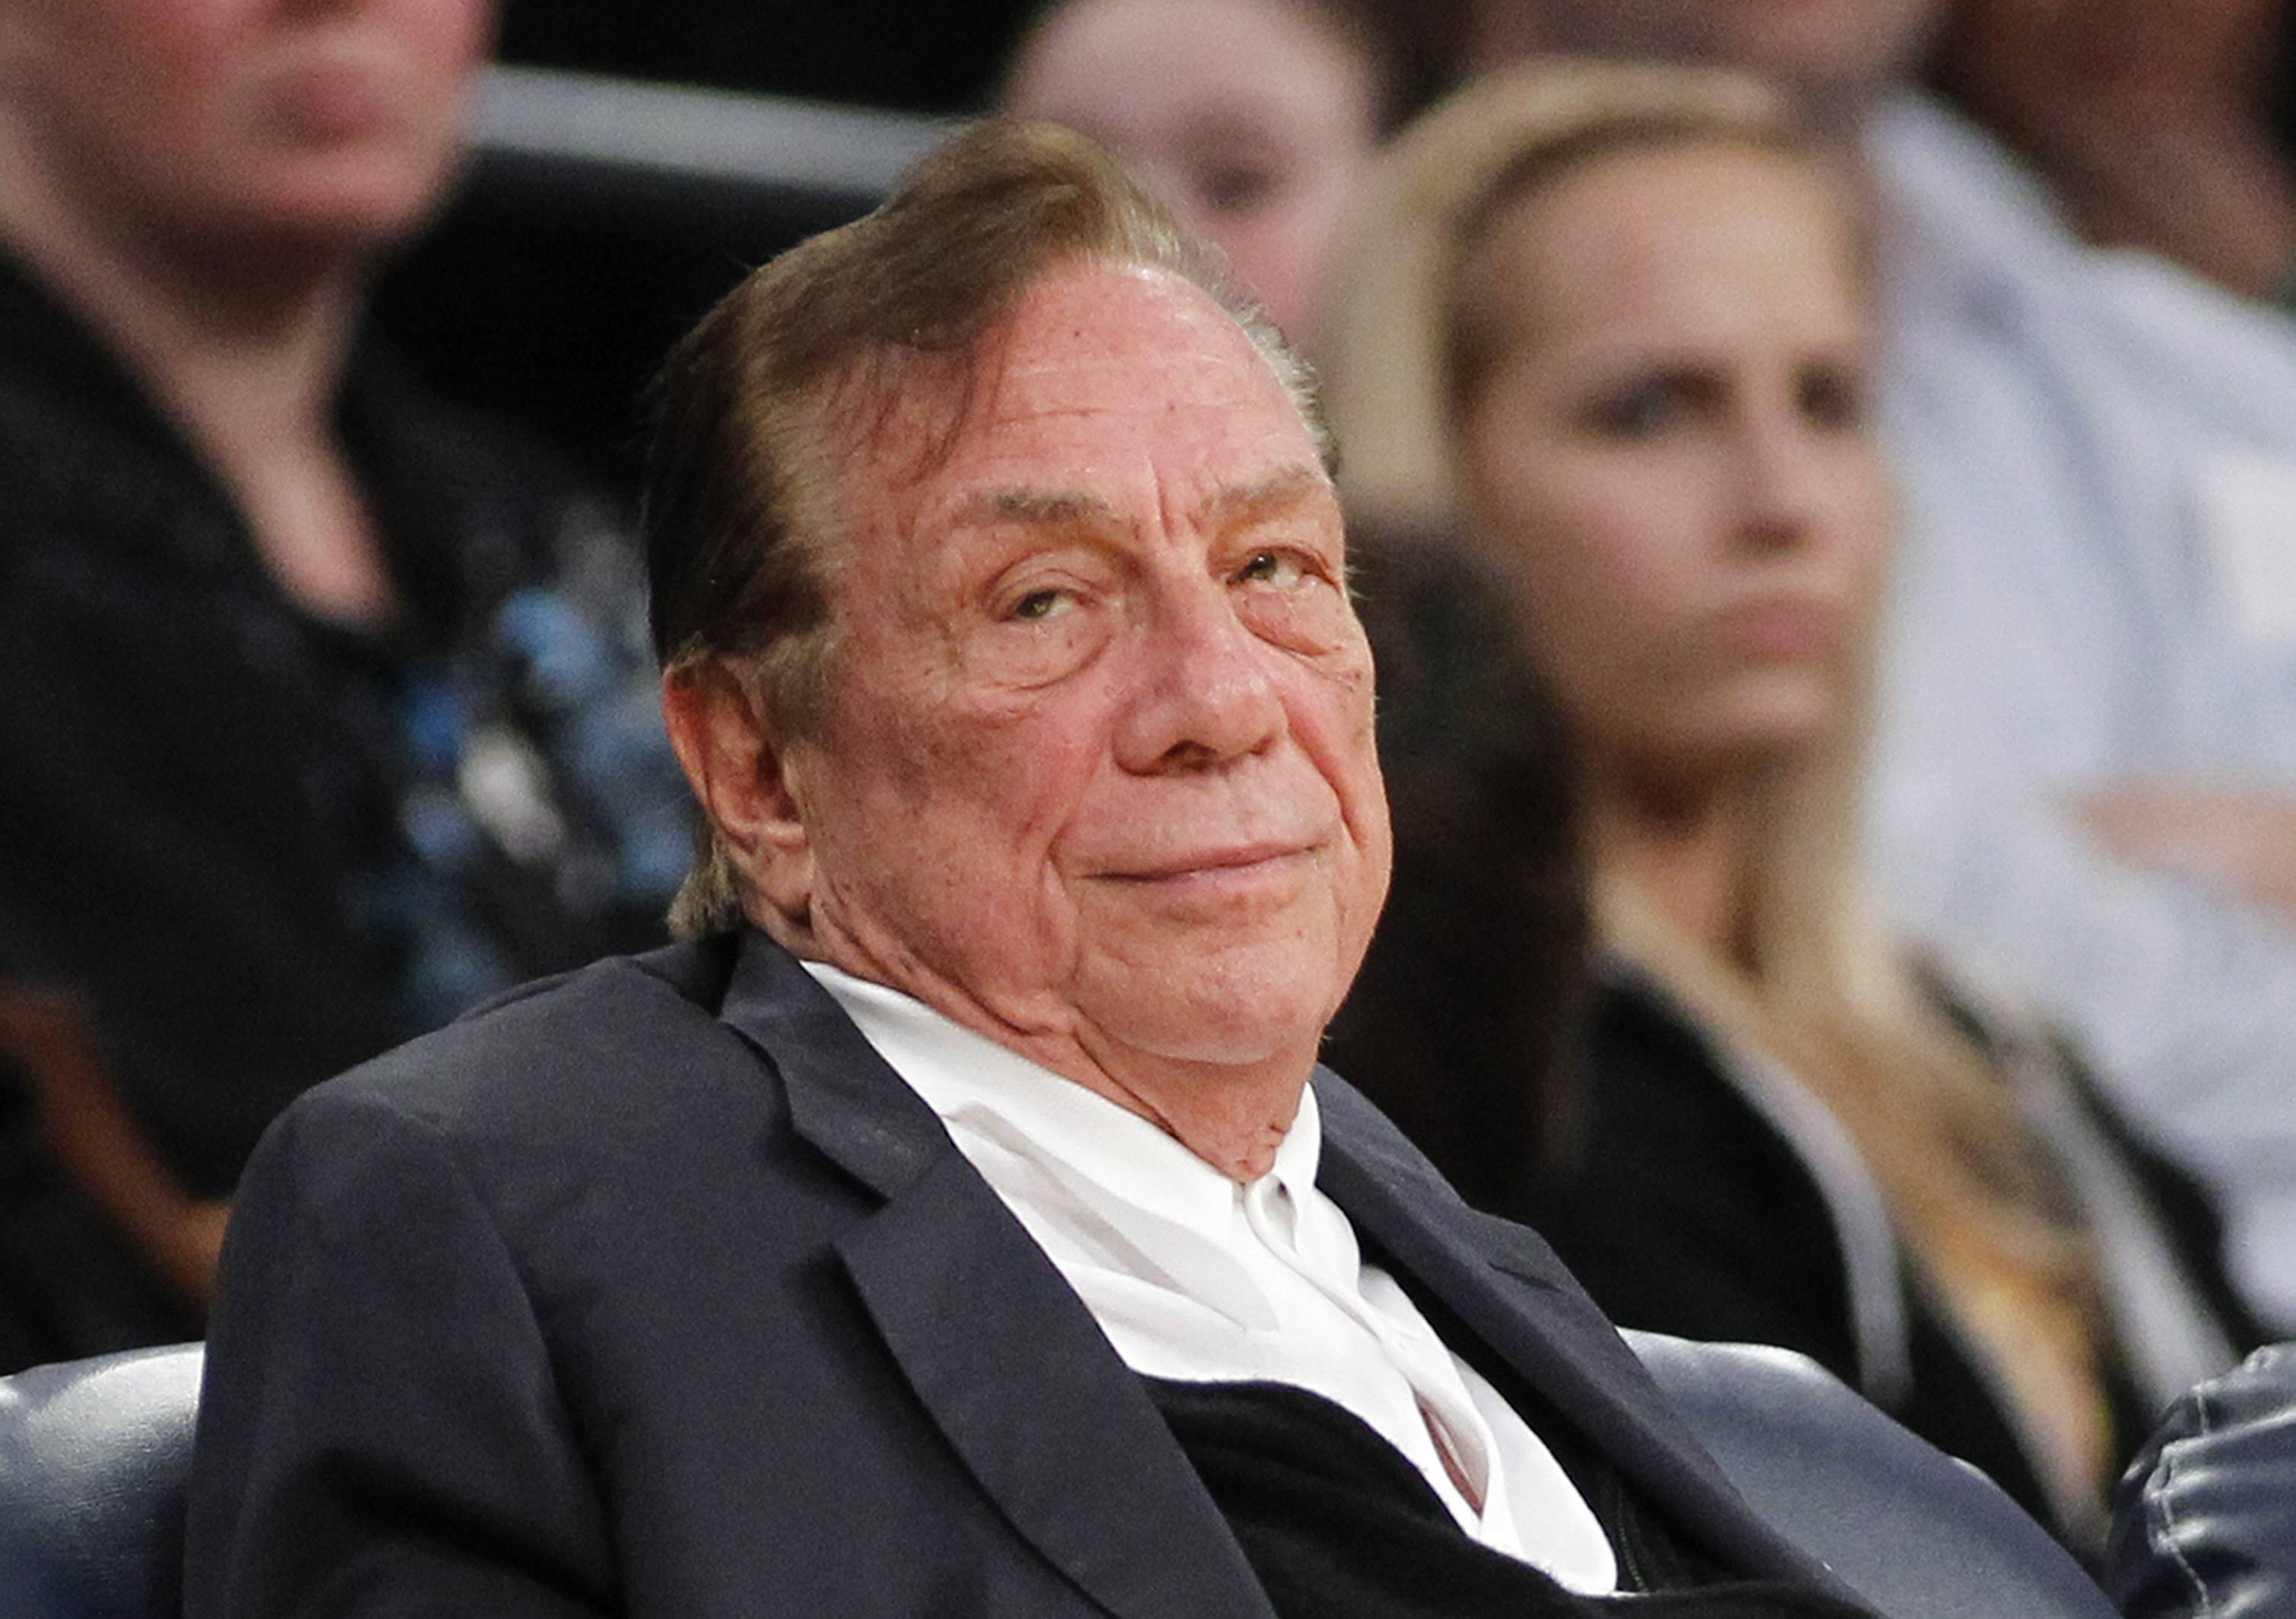 Donald Sterling has agreed to surrender his stake in the Los Angeles Clippers to his estranged wife, and she is moving ahead with selling the team, a person with knowledge of the negotiations told The Associated Press on Friday.